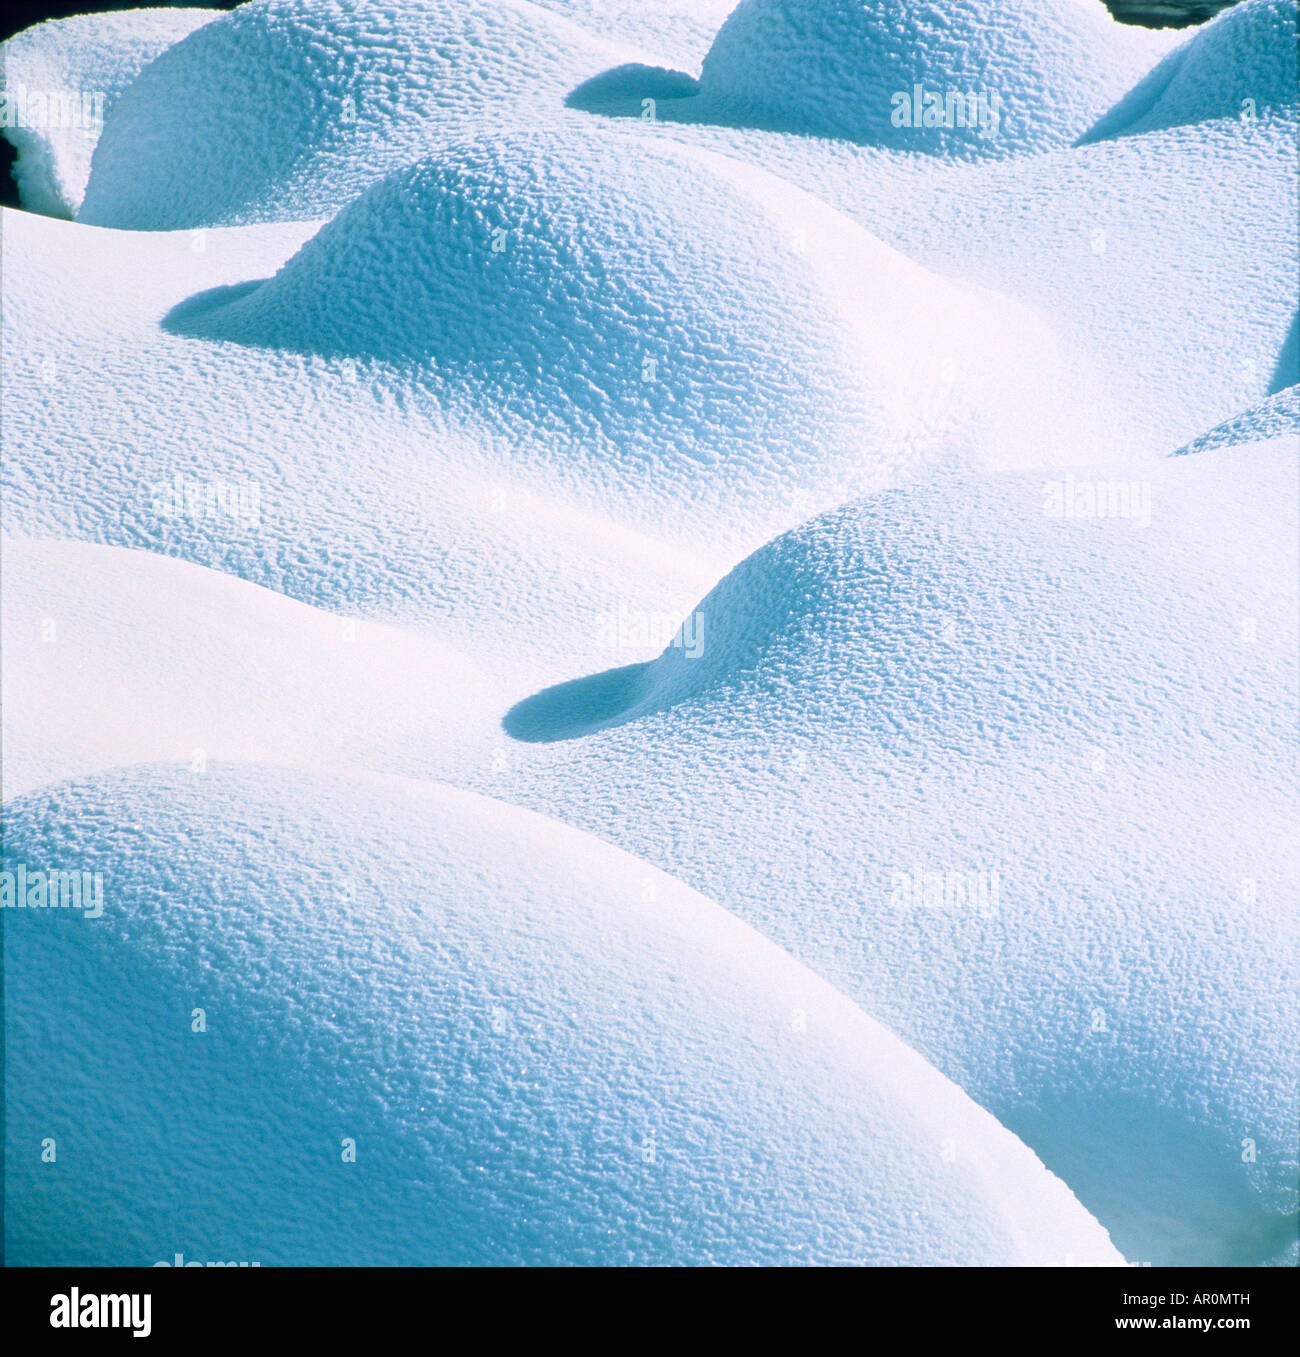 Kissen Lamar Valley Yellowstone Natl Snowpark Stockbild